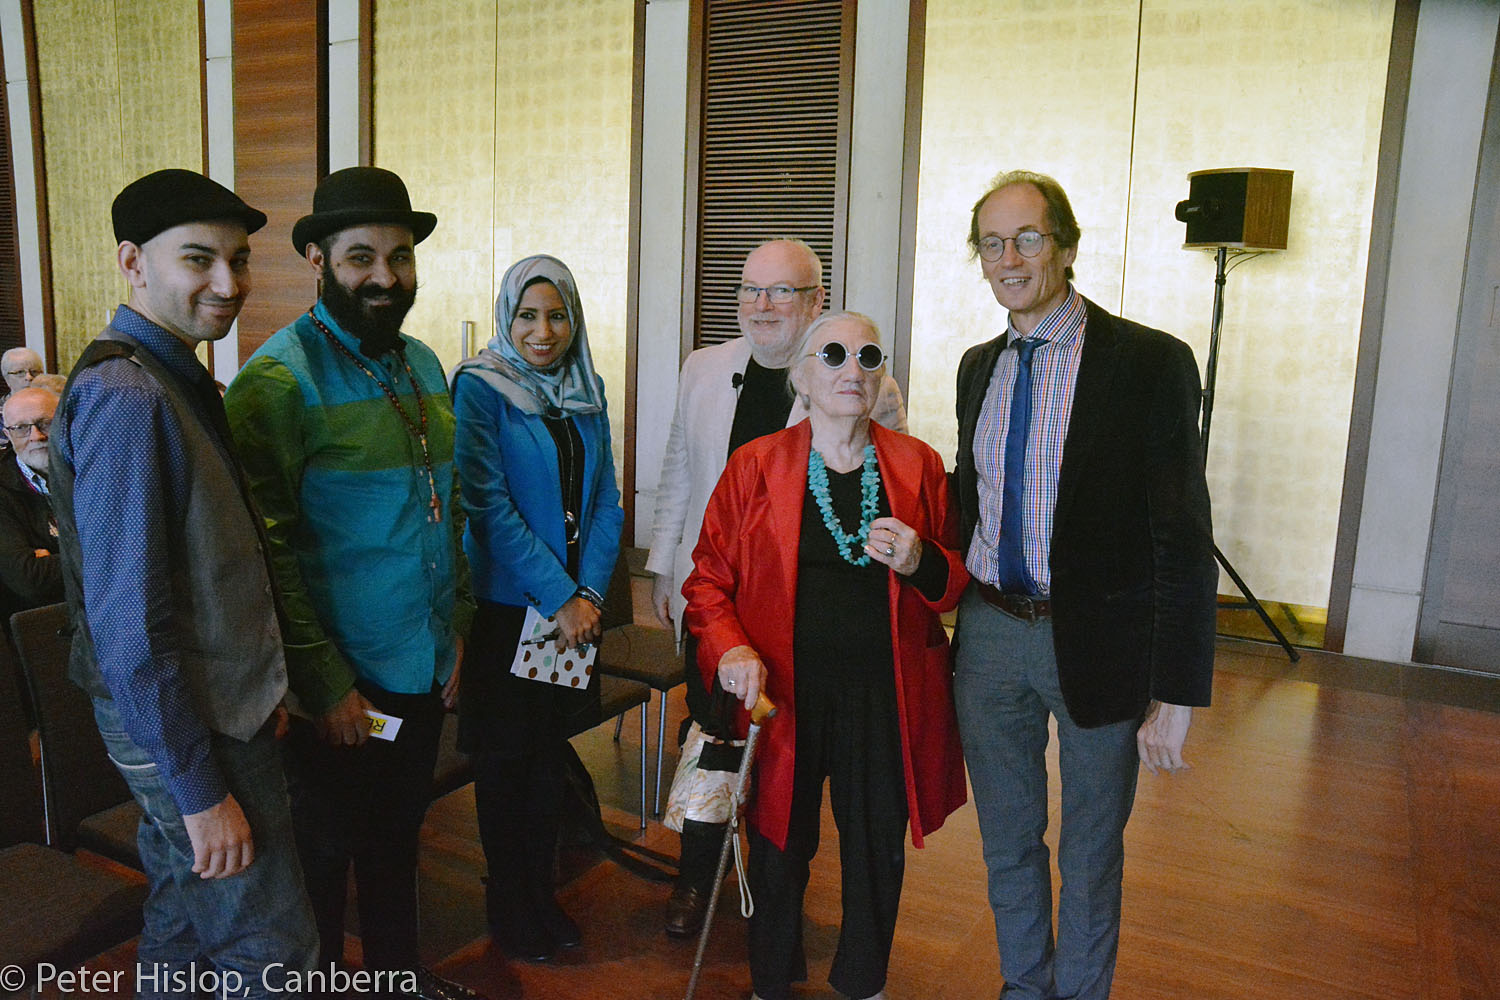 CIMF 2016 - Concert 06 - Barbara Blackman's Festival Blessing. James and Joseph Tawadros, Raihan Ismail, Hossein Valamanesh and Andrew Ford discuss working as an artist in the middle east.